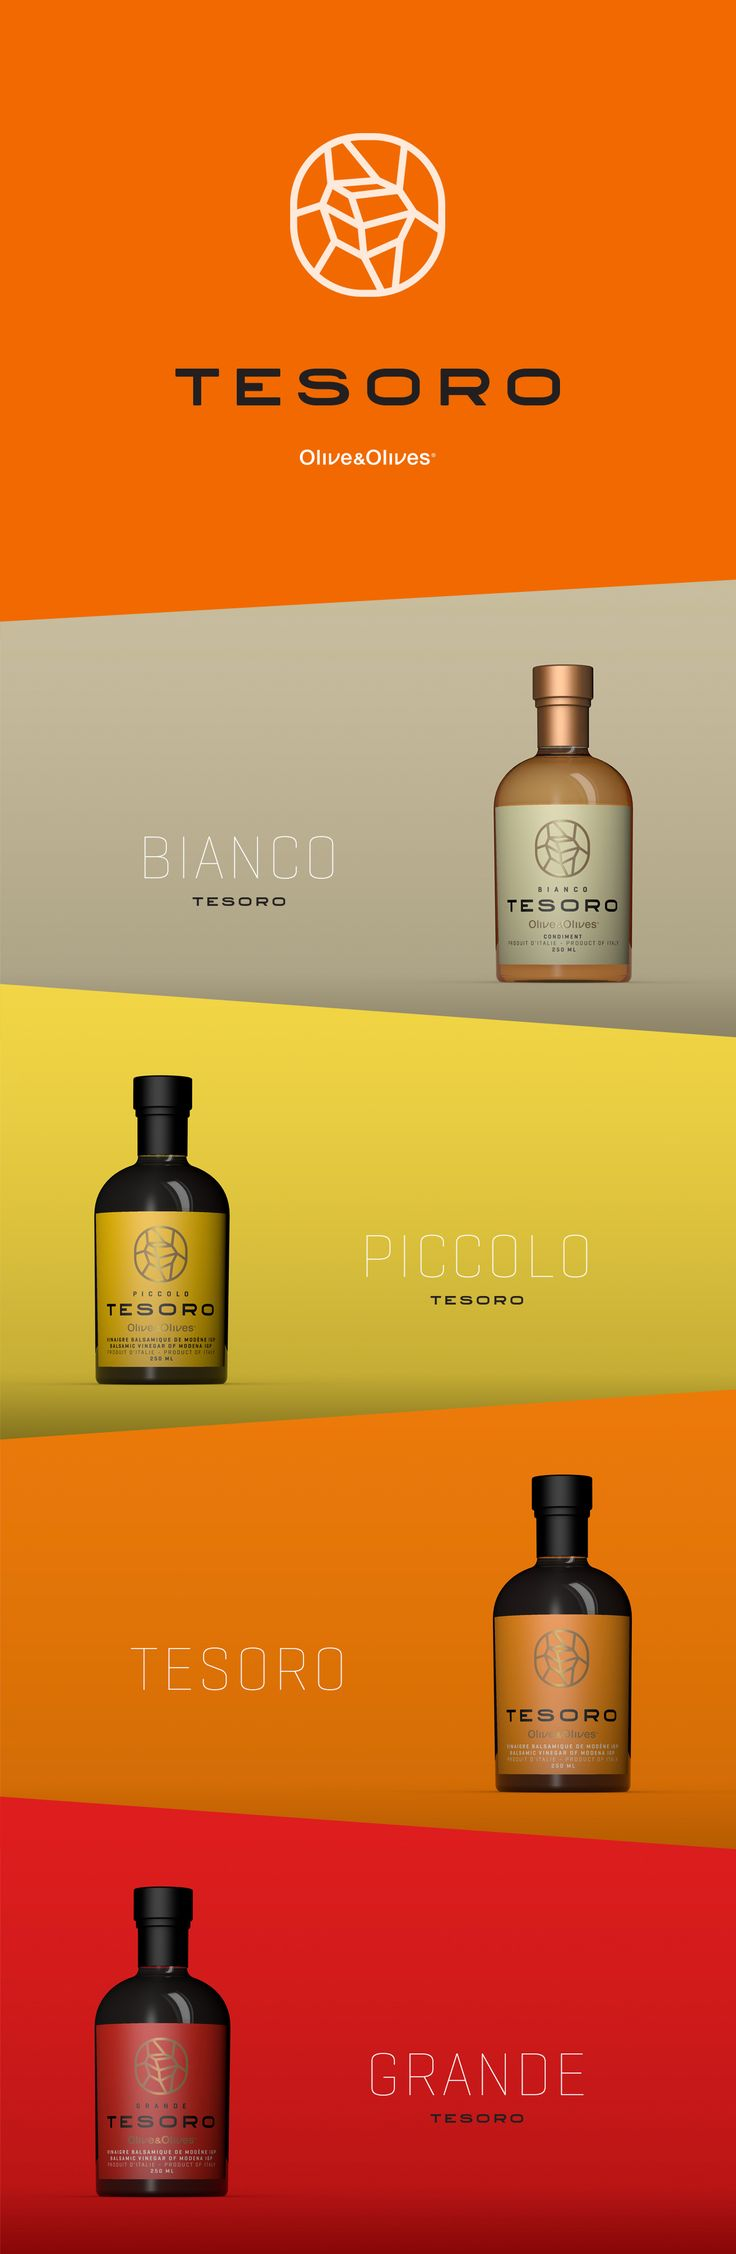 Tesoro Olive& Olives vinegar and condiment by Denis Bégin. Source: Behance. #SFields99 #packaging #design #inspiration #ideas #product #branding #oil #creative